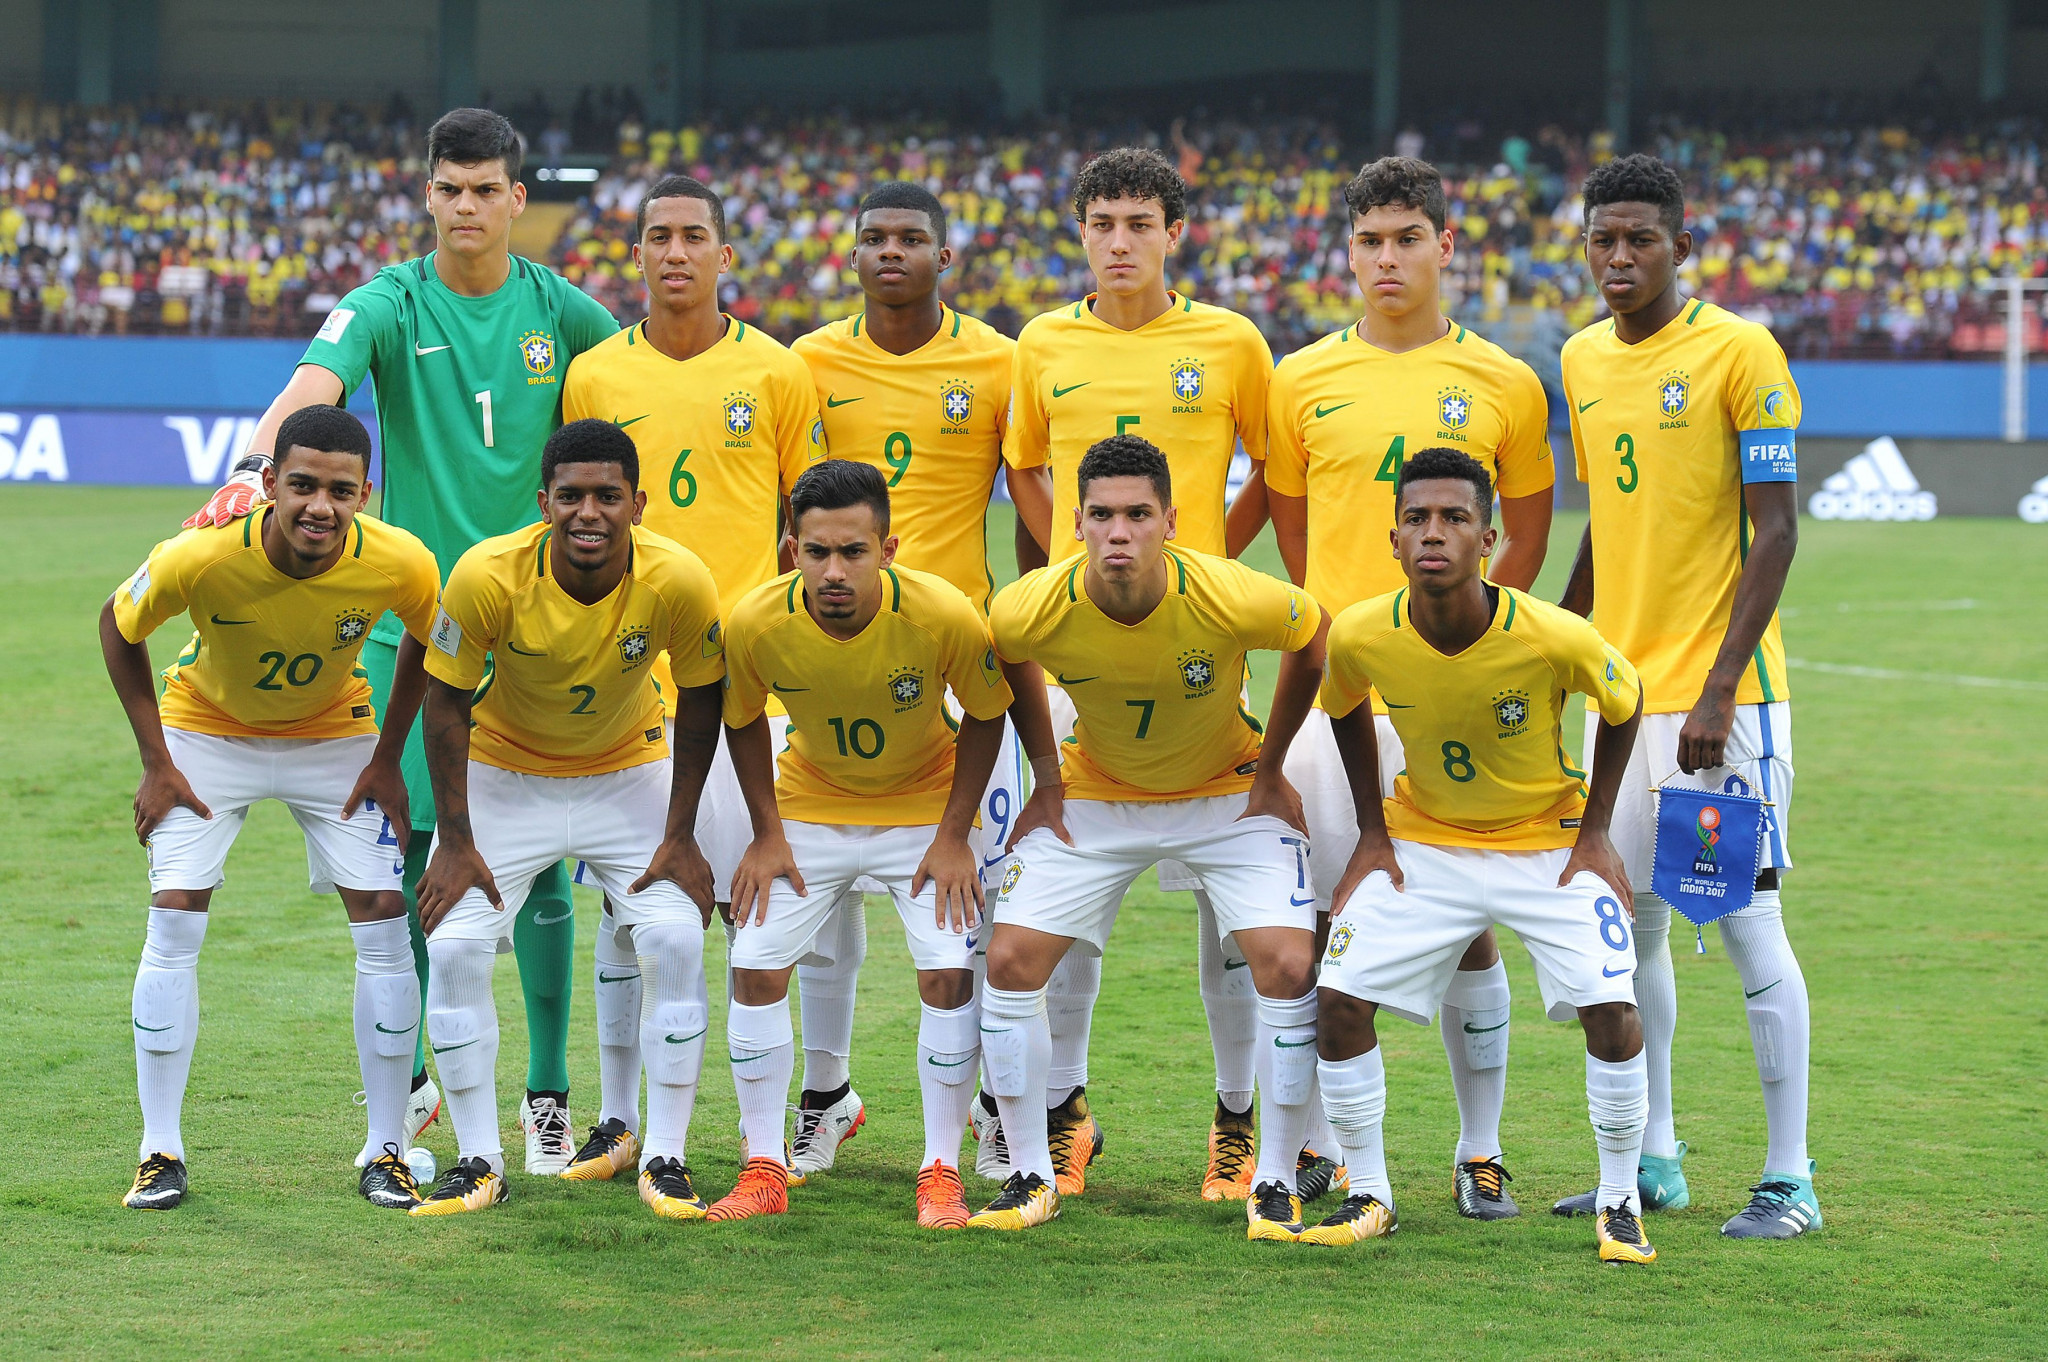 Brazil and Ghana reach the last eight of FIFA Under-17 World Cup